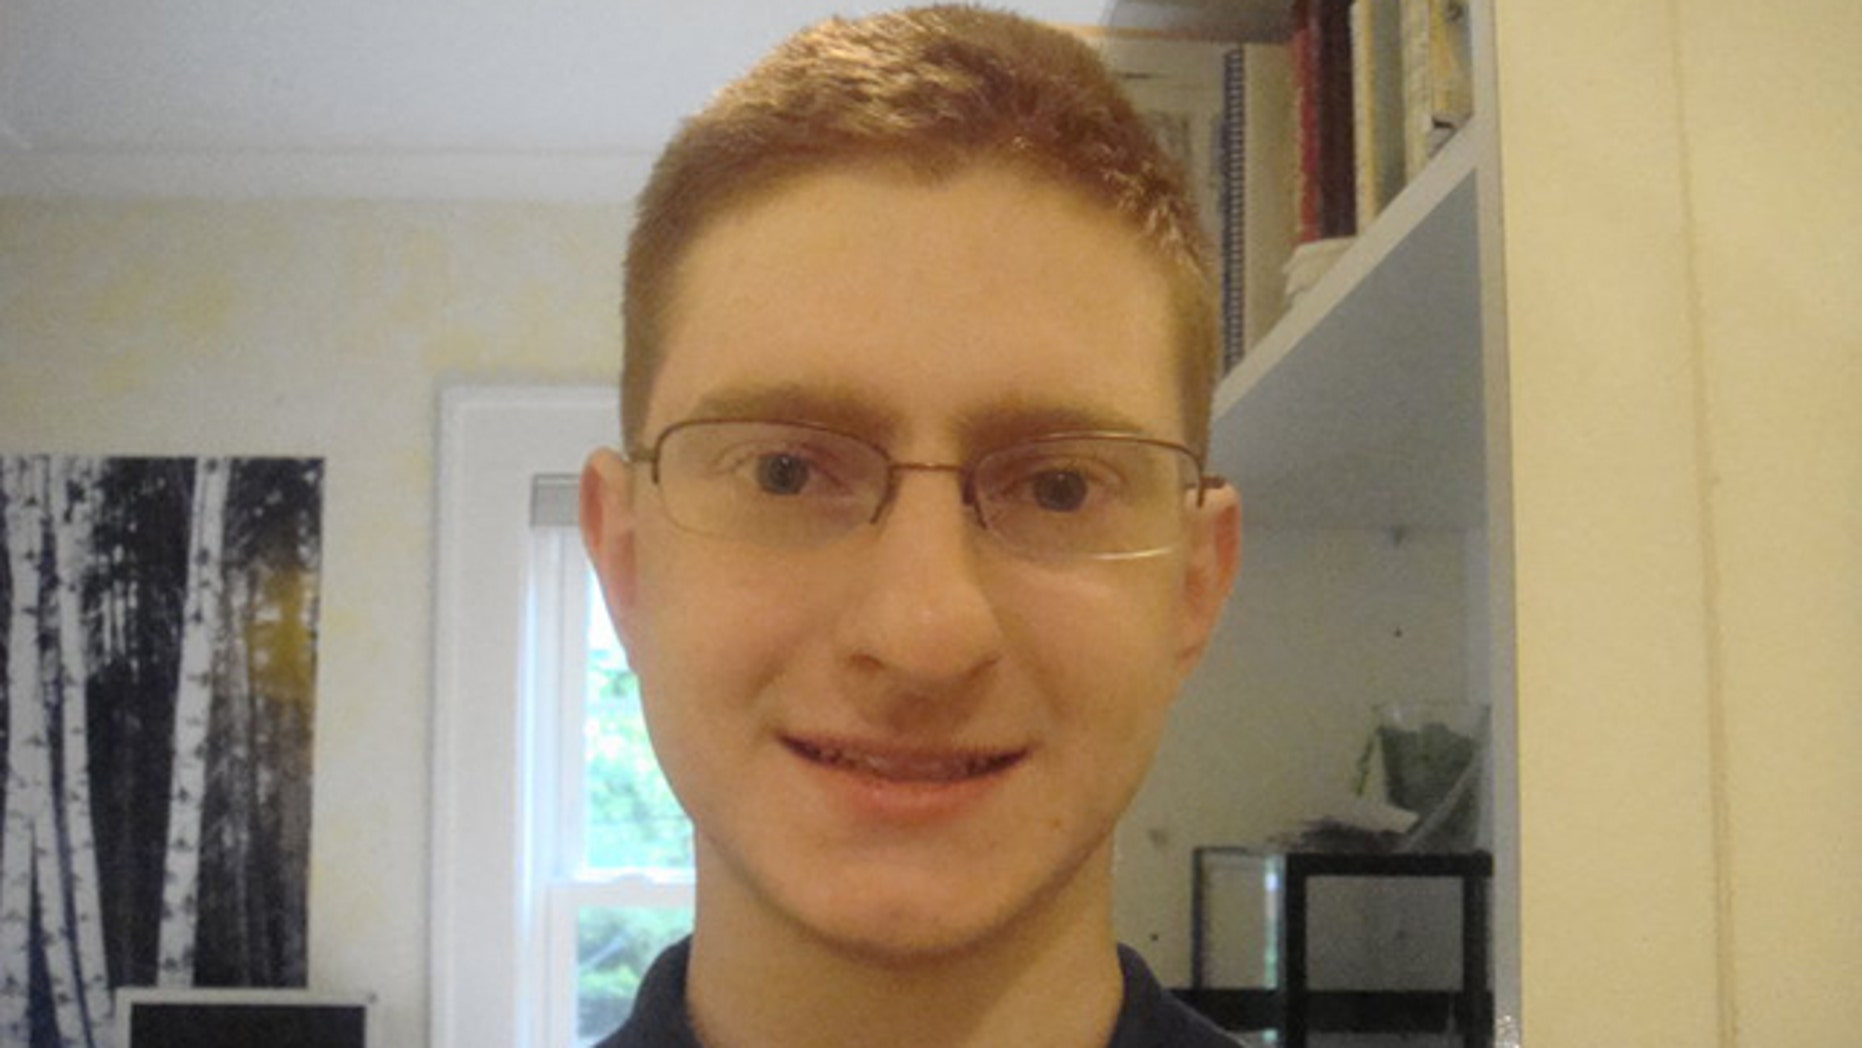 Rutgers University freshman Tyler Clementi, 18, is seen in an undated photo posted to his Facebook page